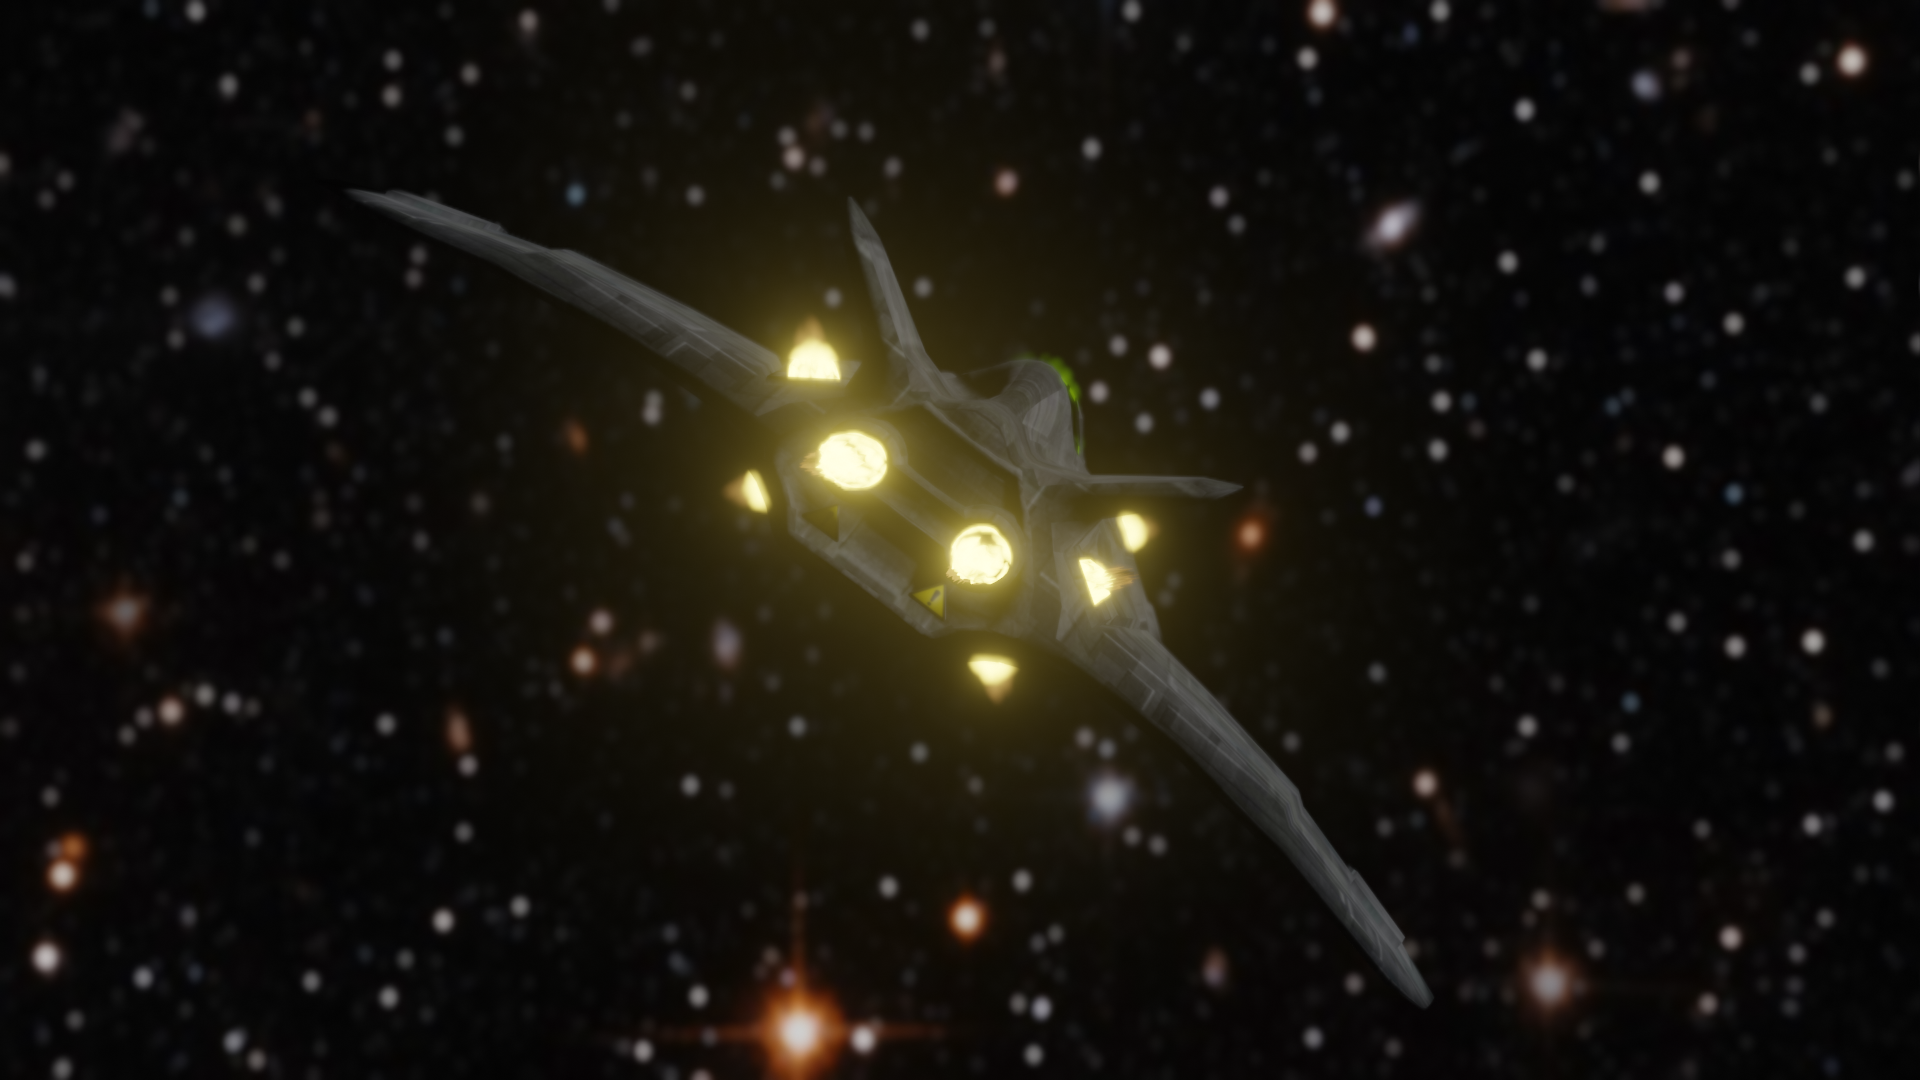 Small Sci-Fi Fighter preview image 2